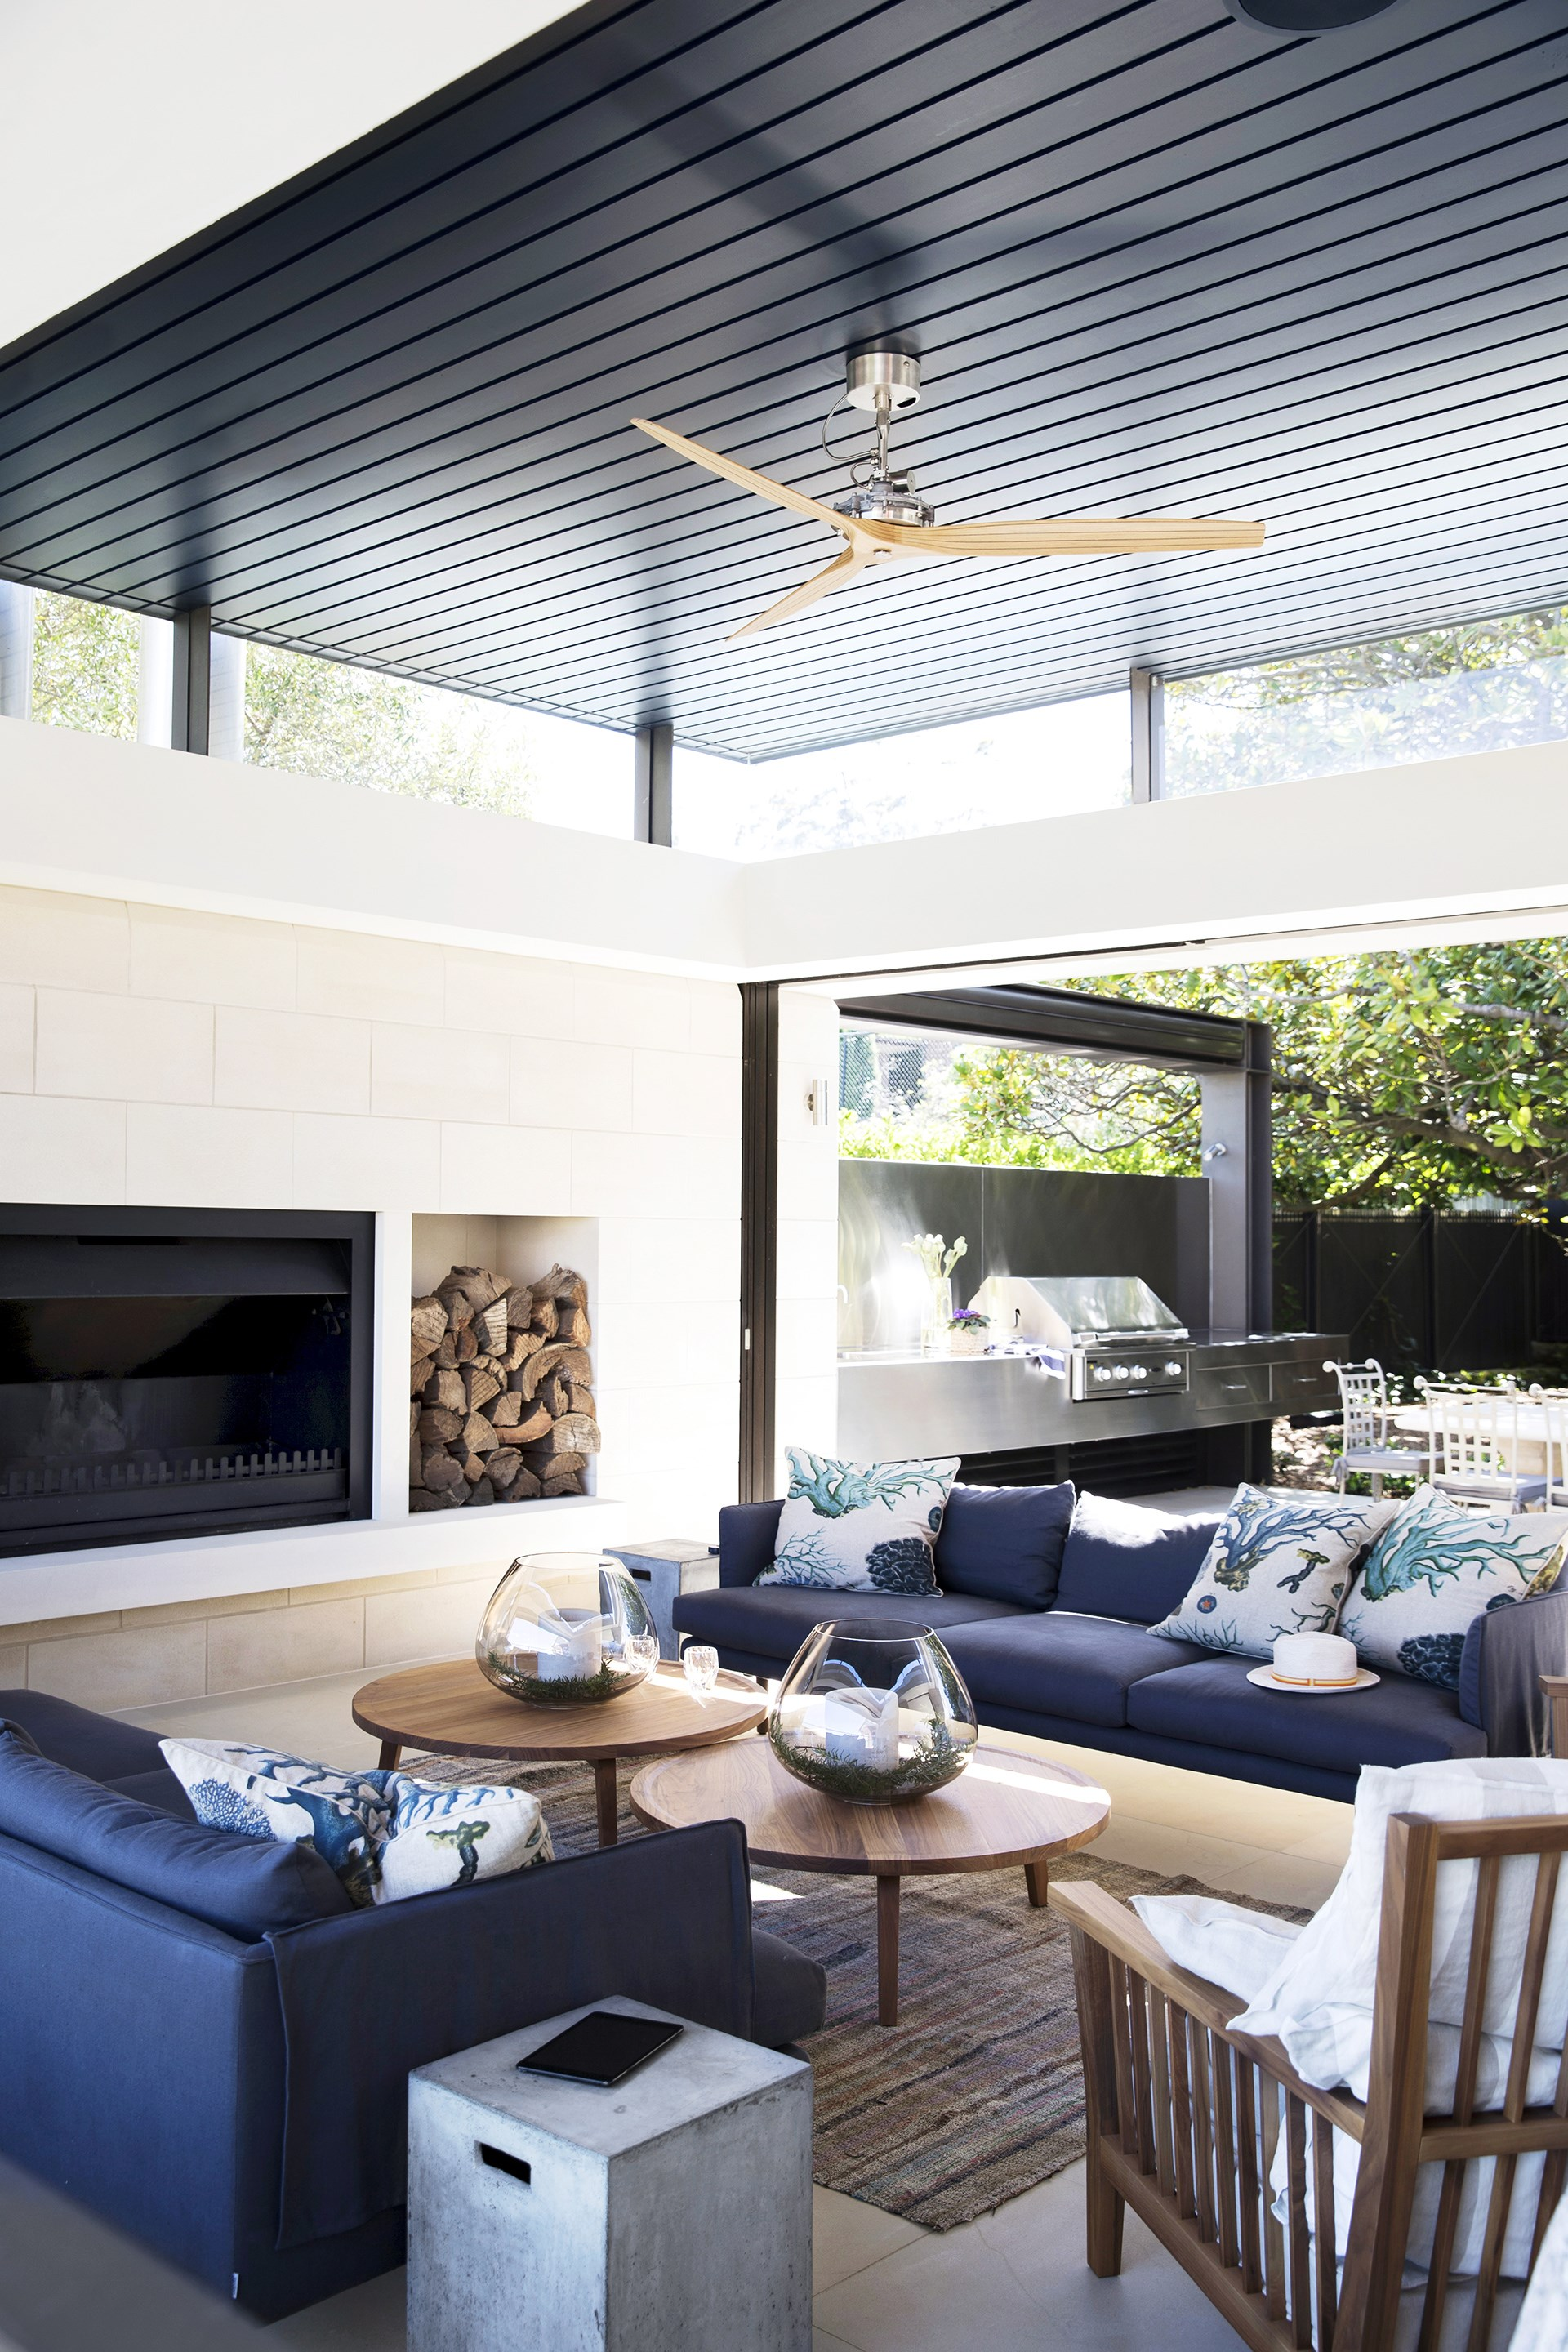 """Homeowners Prue and Jamie embarked upon an 18-month renovation in 2011 and weren't aware of what a gem they had on their hands until work was underway. By adding a dramatic 'box' extension to the rear of their  [federation style house](http://www.homestolove.com.au/gallery-prues-hidden-federation-gem-2581